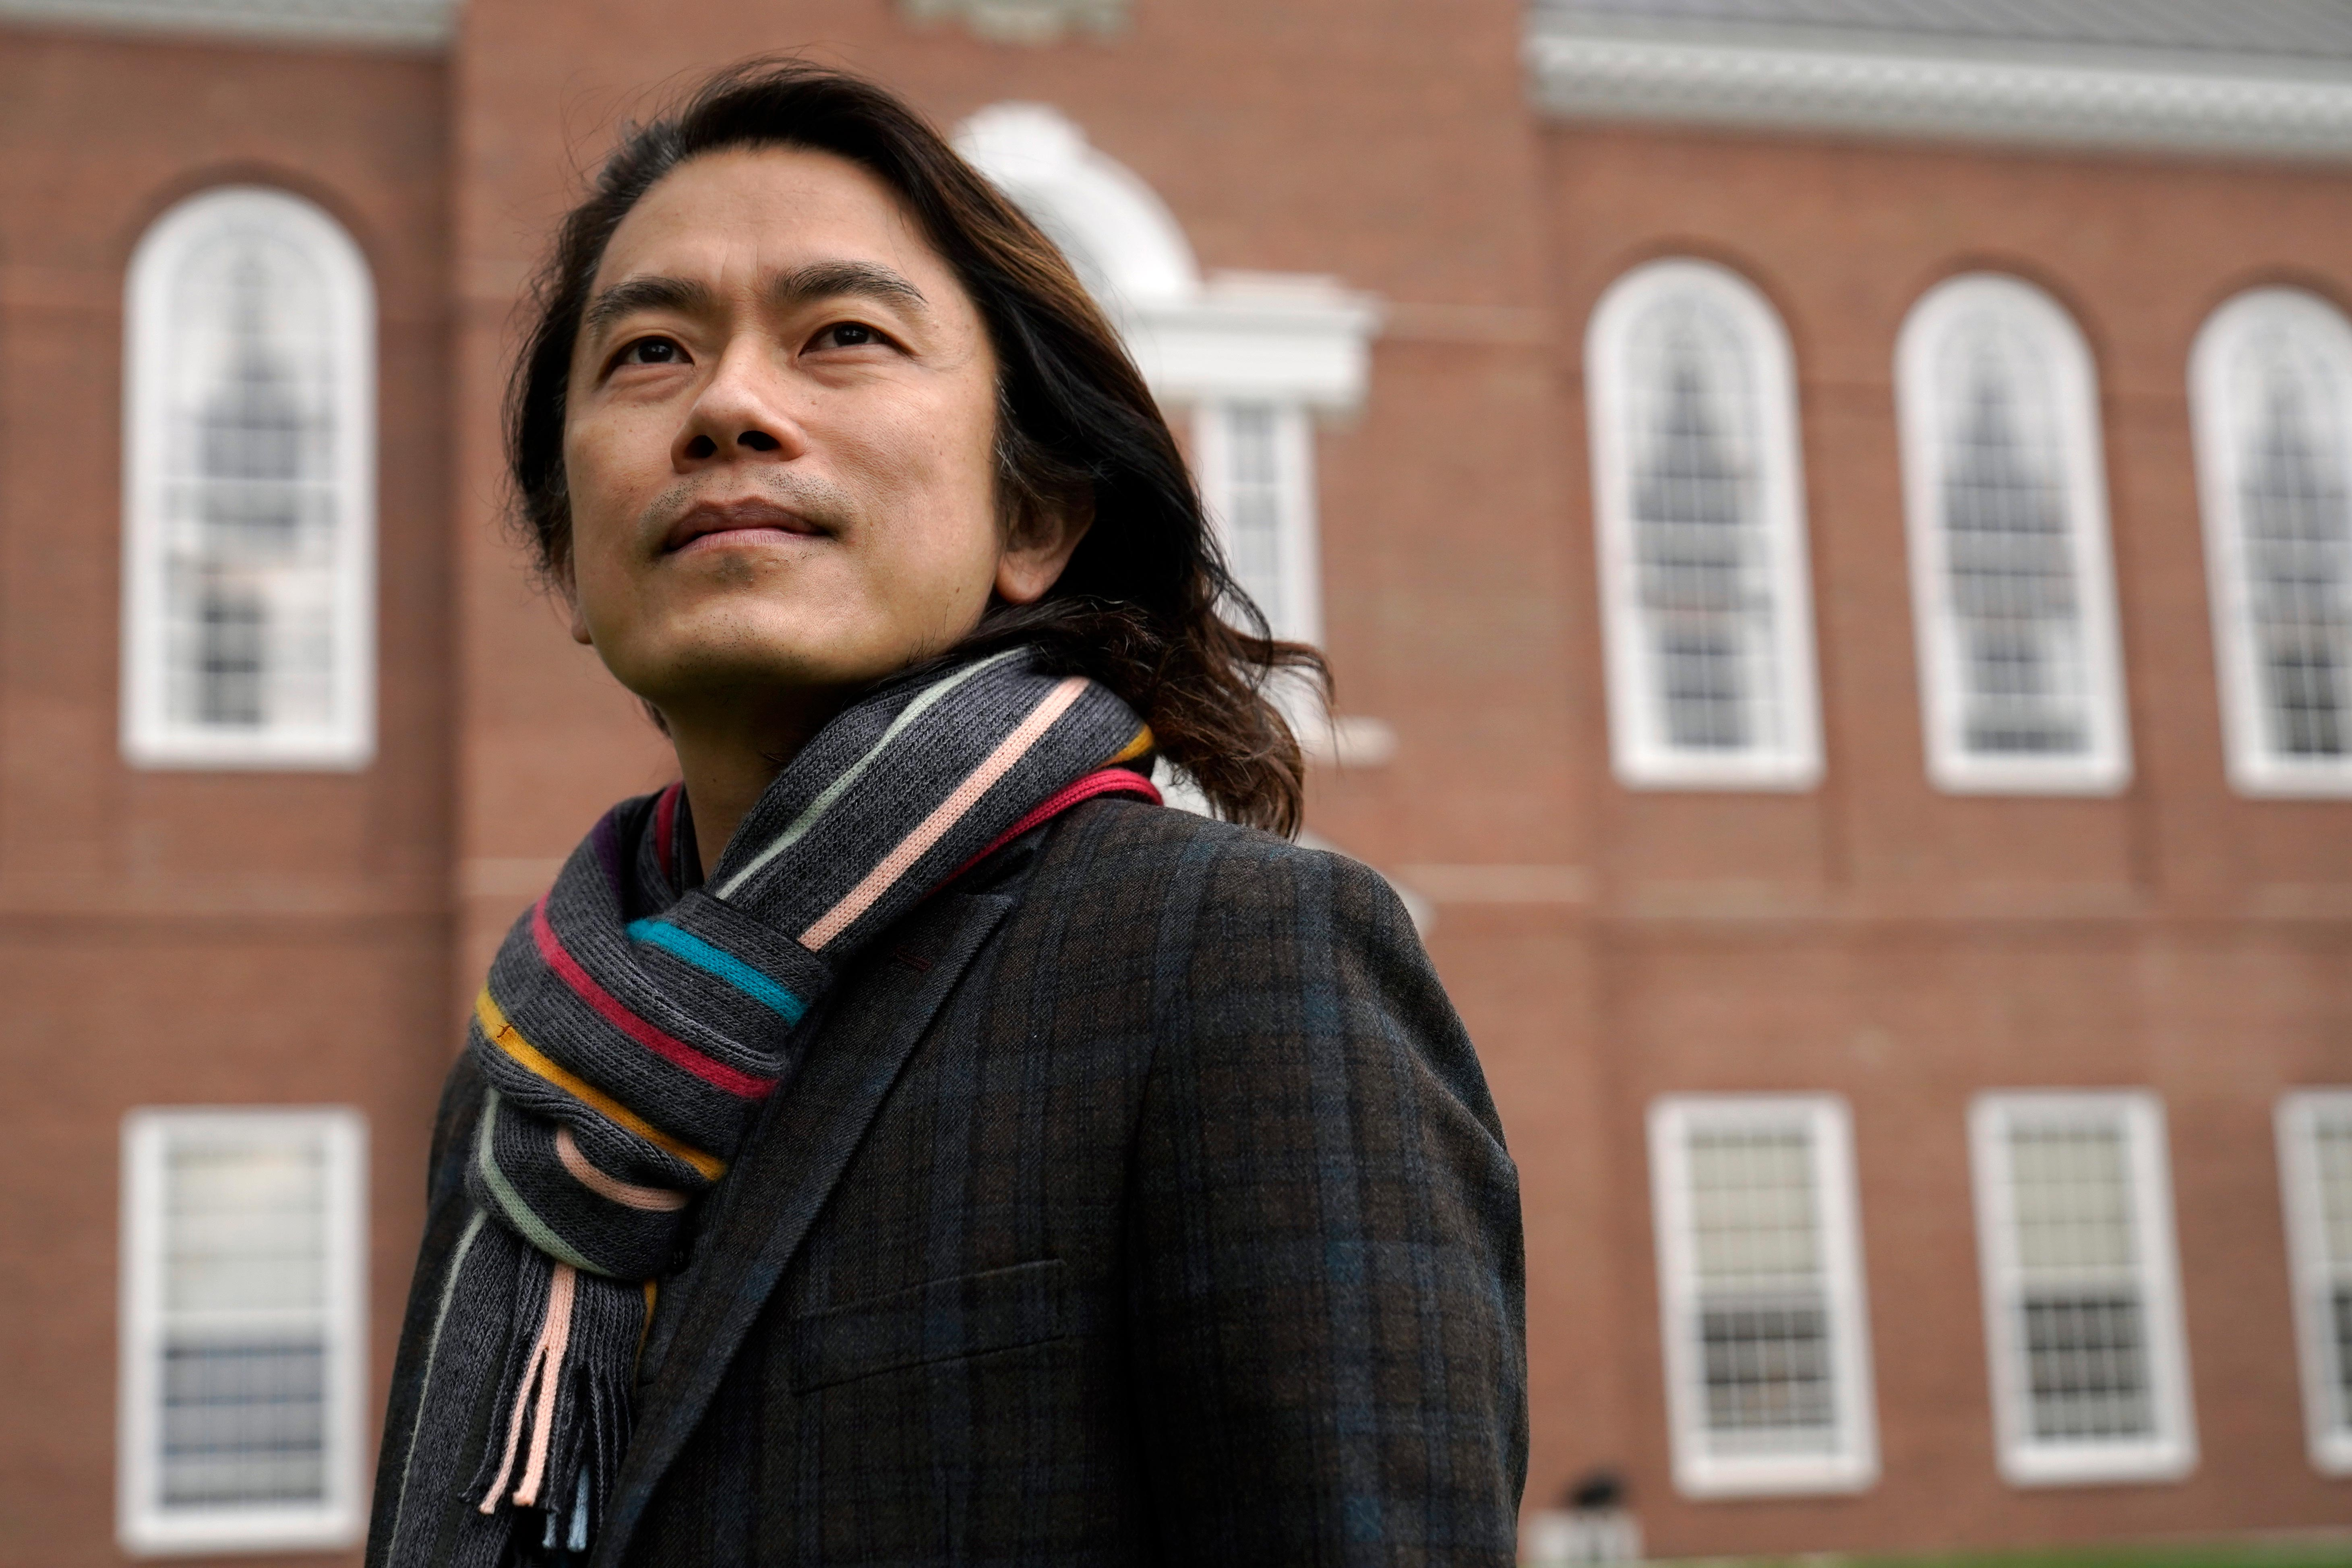 Eng-Beng Lim, a professor at Dartmouth College, stands for a photograph on the school's campus, Tuesday, April 20, 2021, in Hanover, N.H. (AP Photo/Steven Senne)